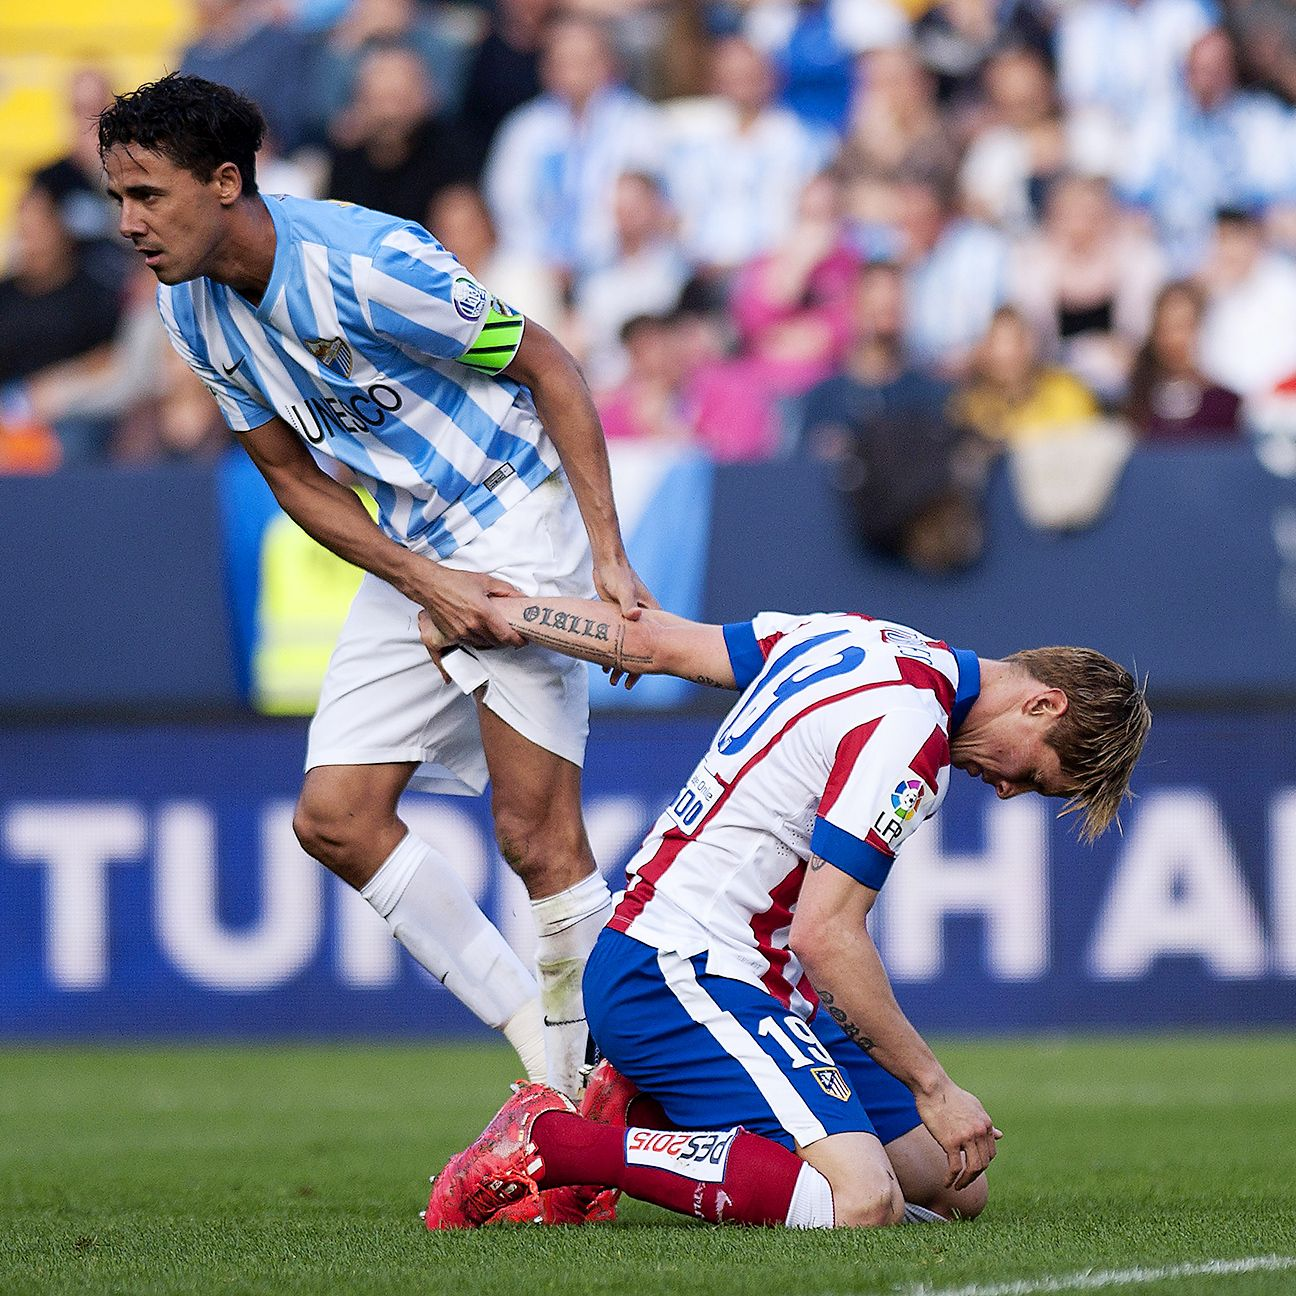 Fernando Torres missed two sitters and produced an own goal in what was a forgettable afternoon for the Atletico Madrid forward at Malaga.